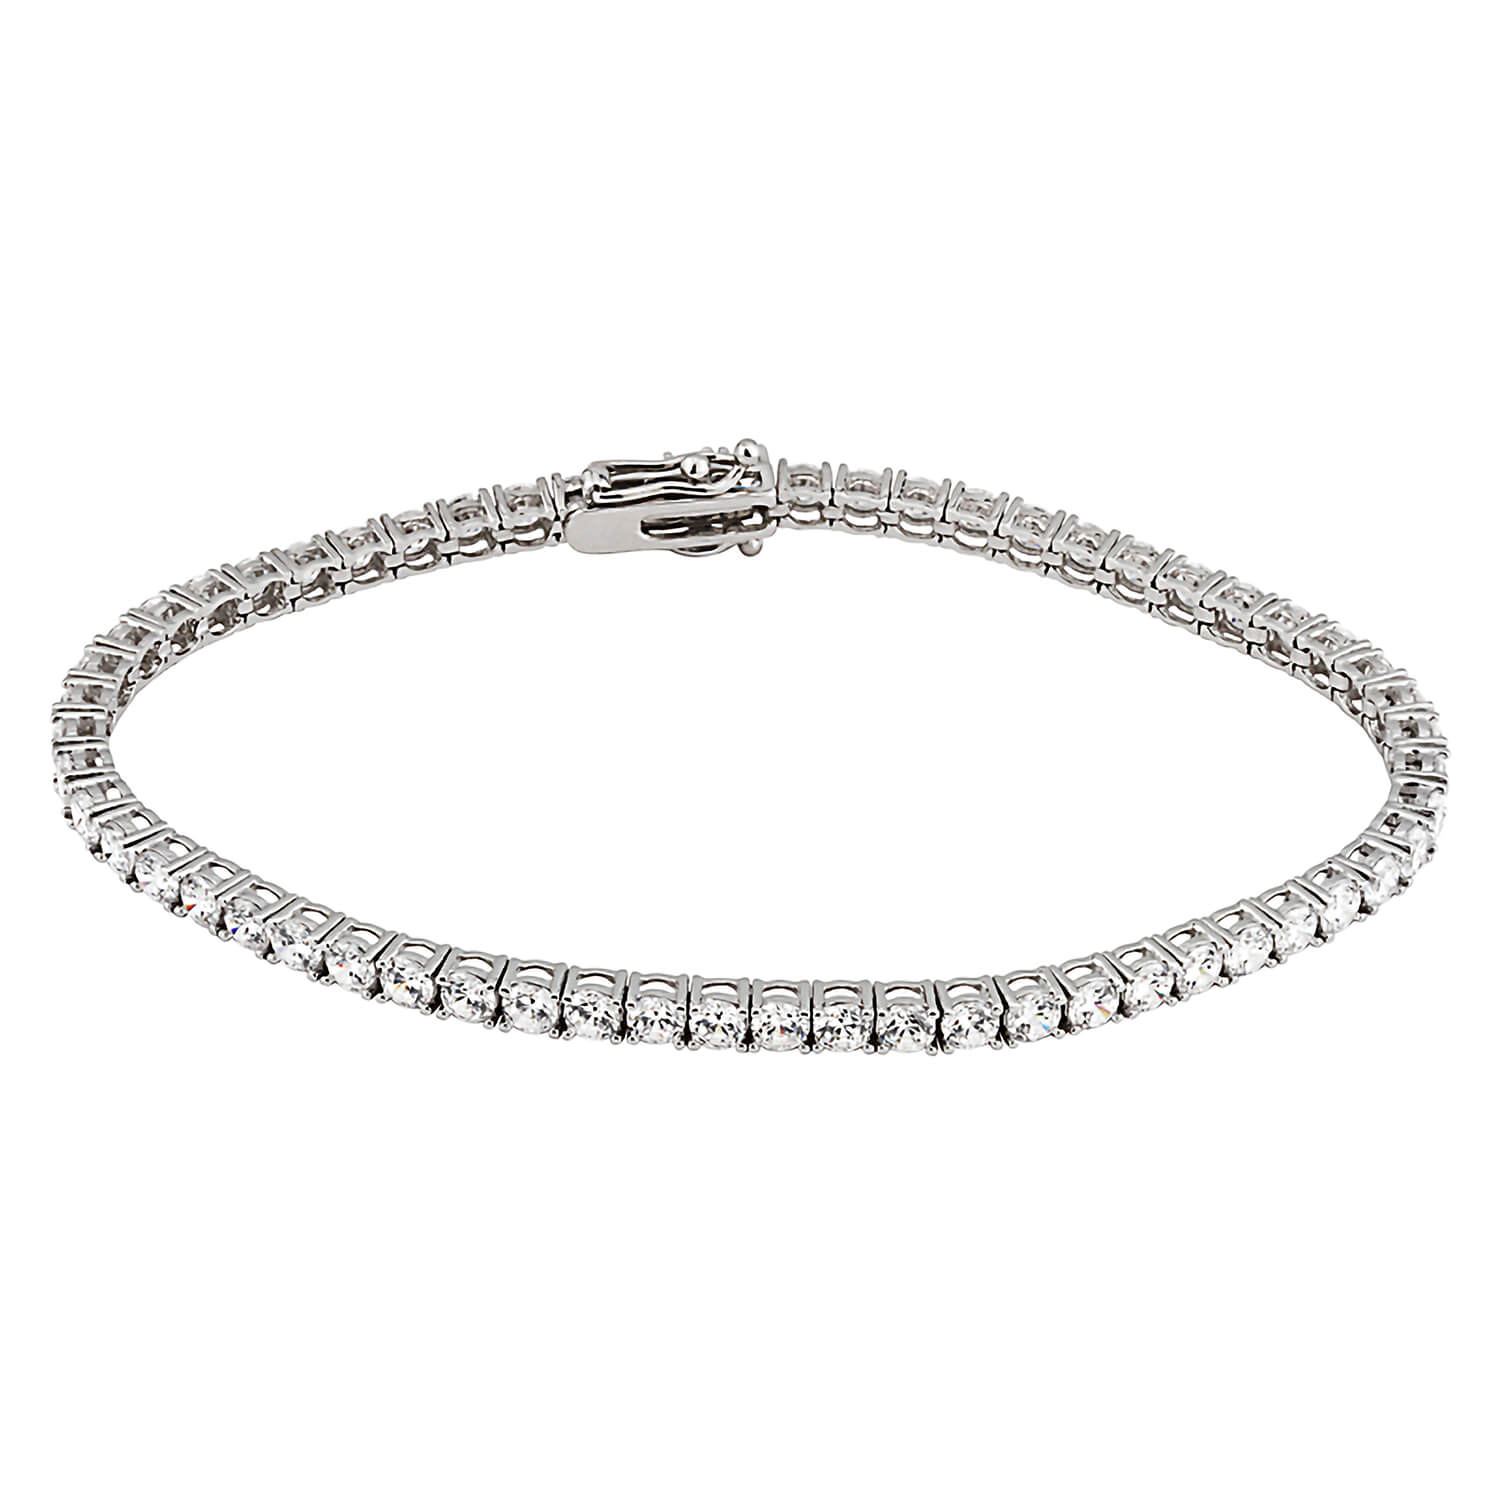 9ct White Gold and Cubic Zirconia Bracelet